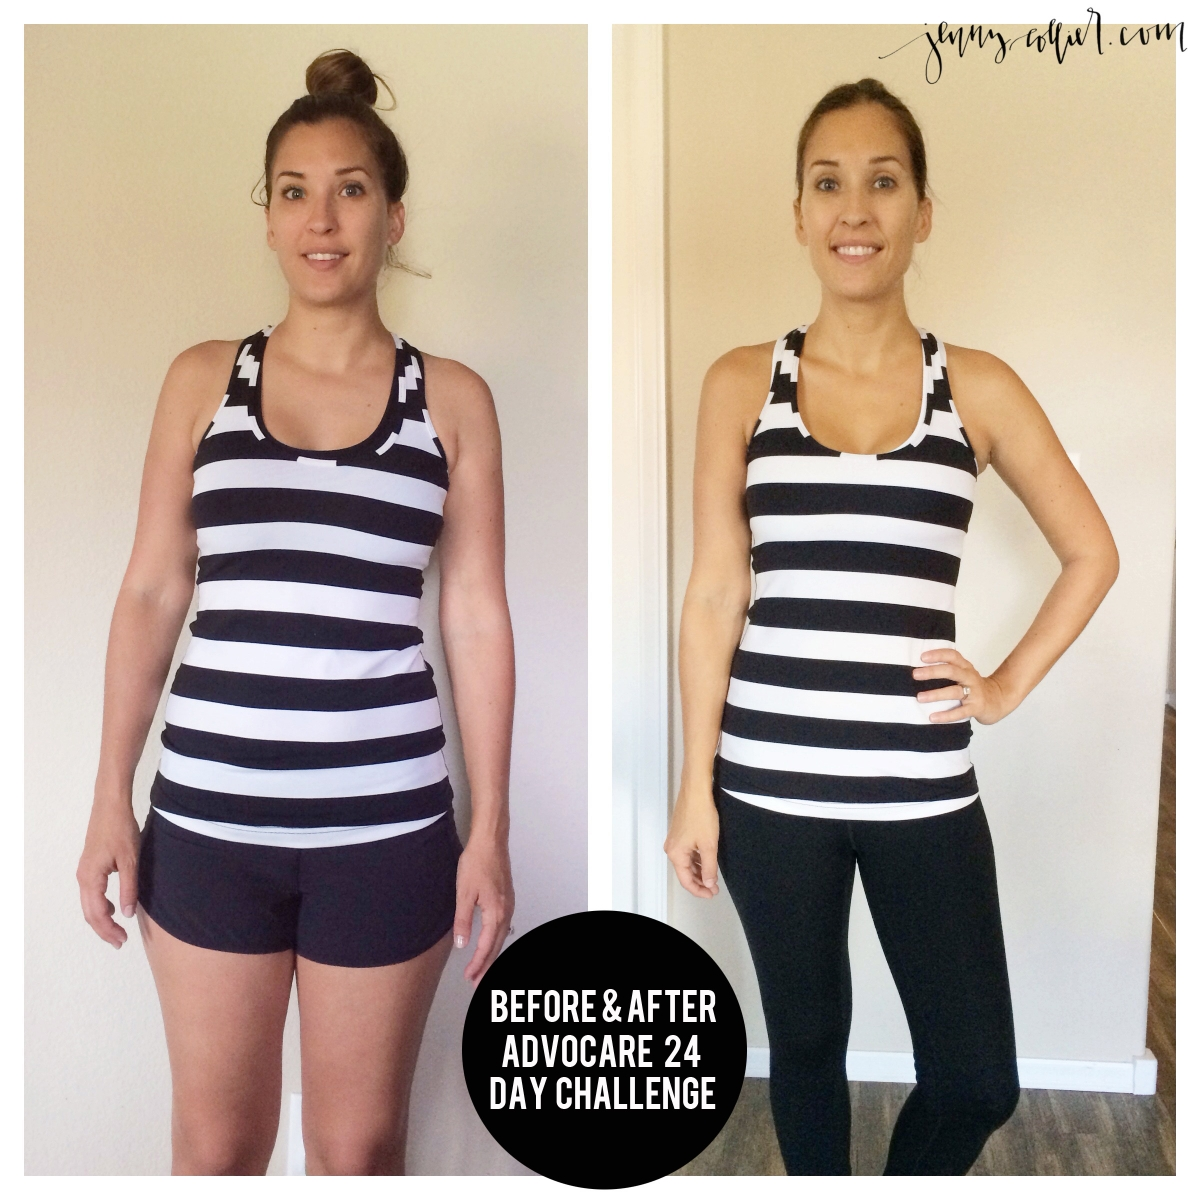 Advocare 24 Day Challenge Before And After 187 Jenny Collier